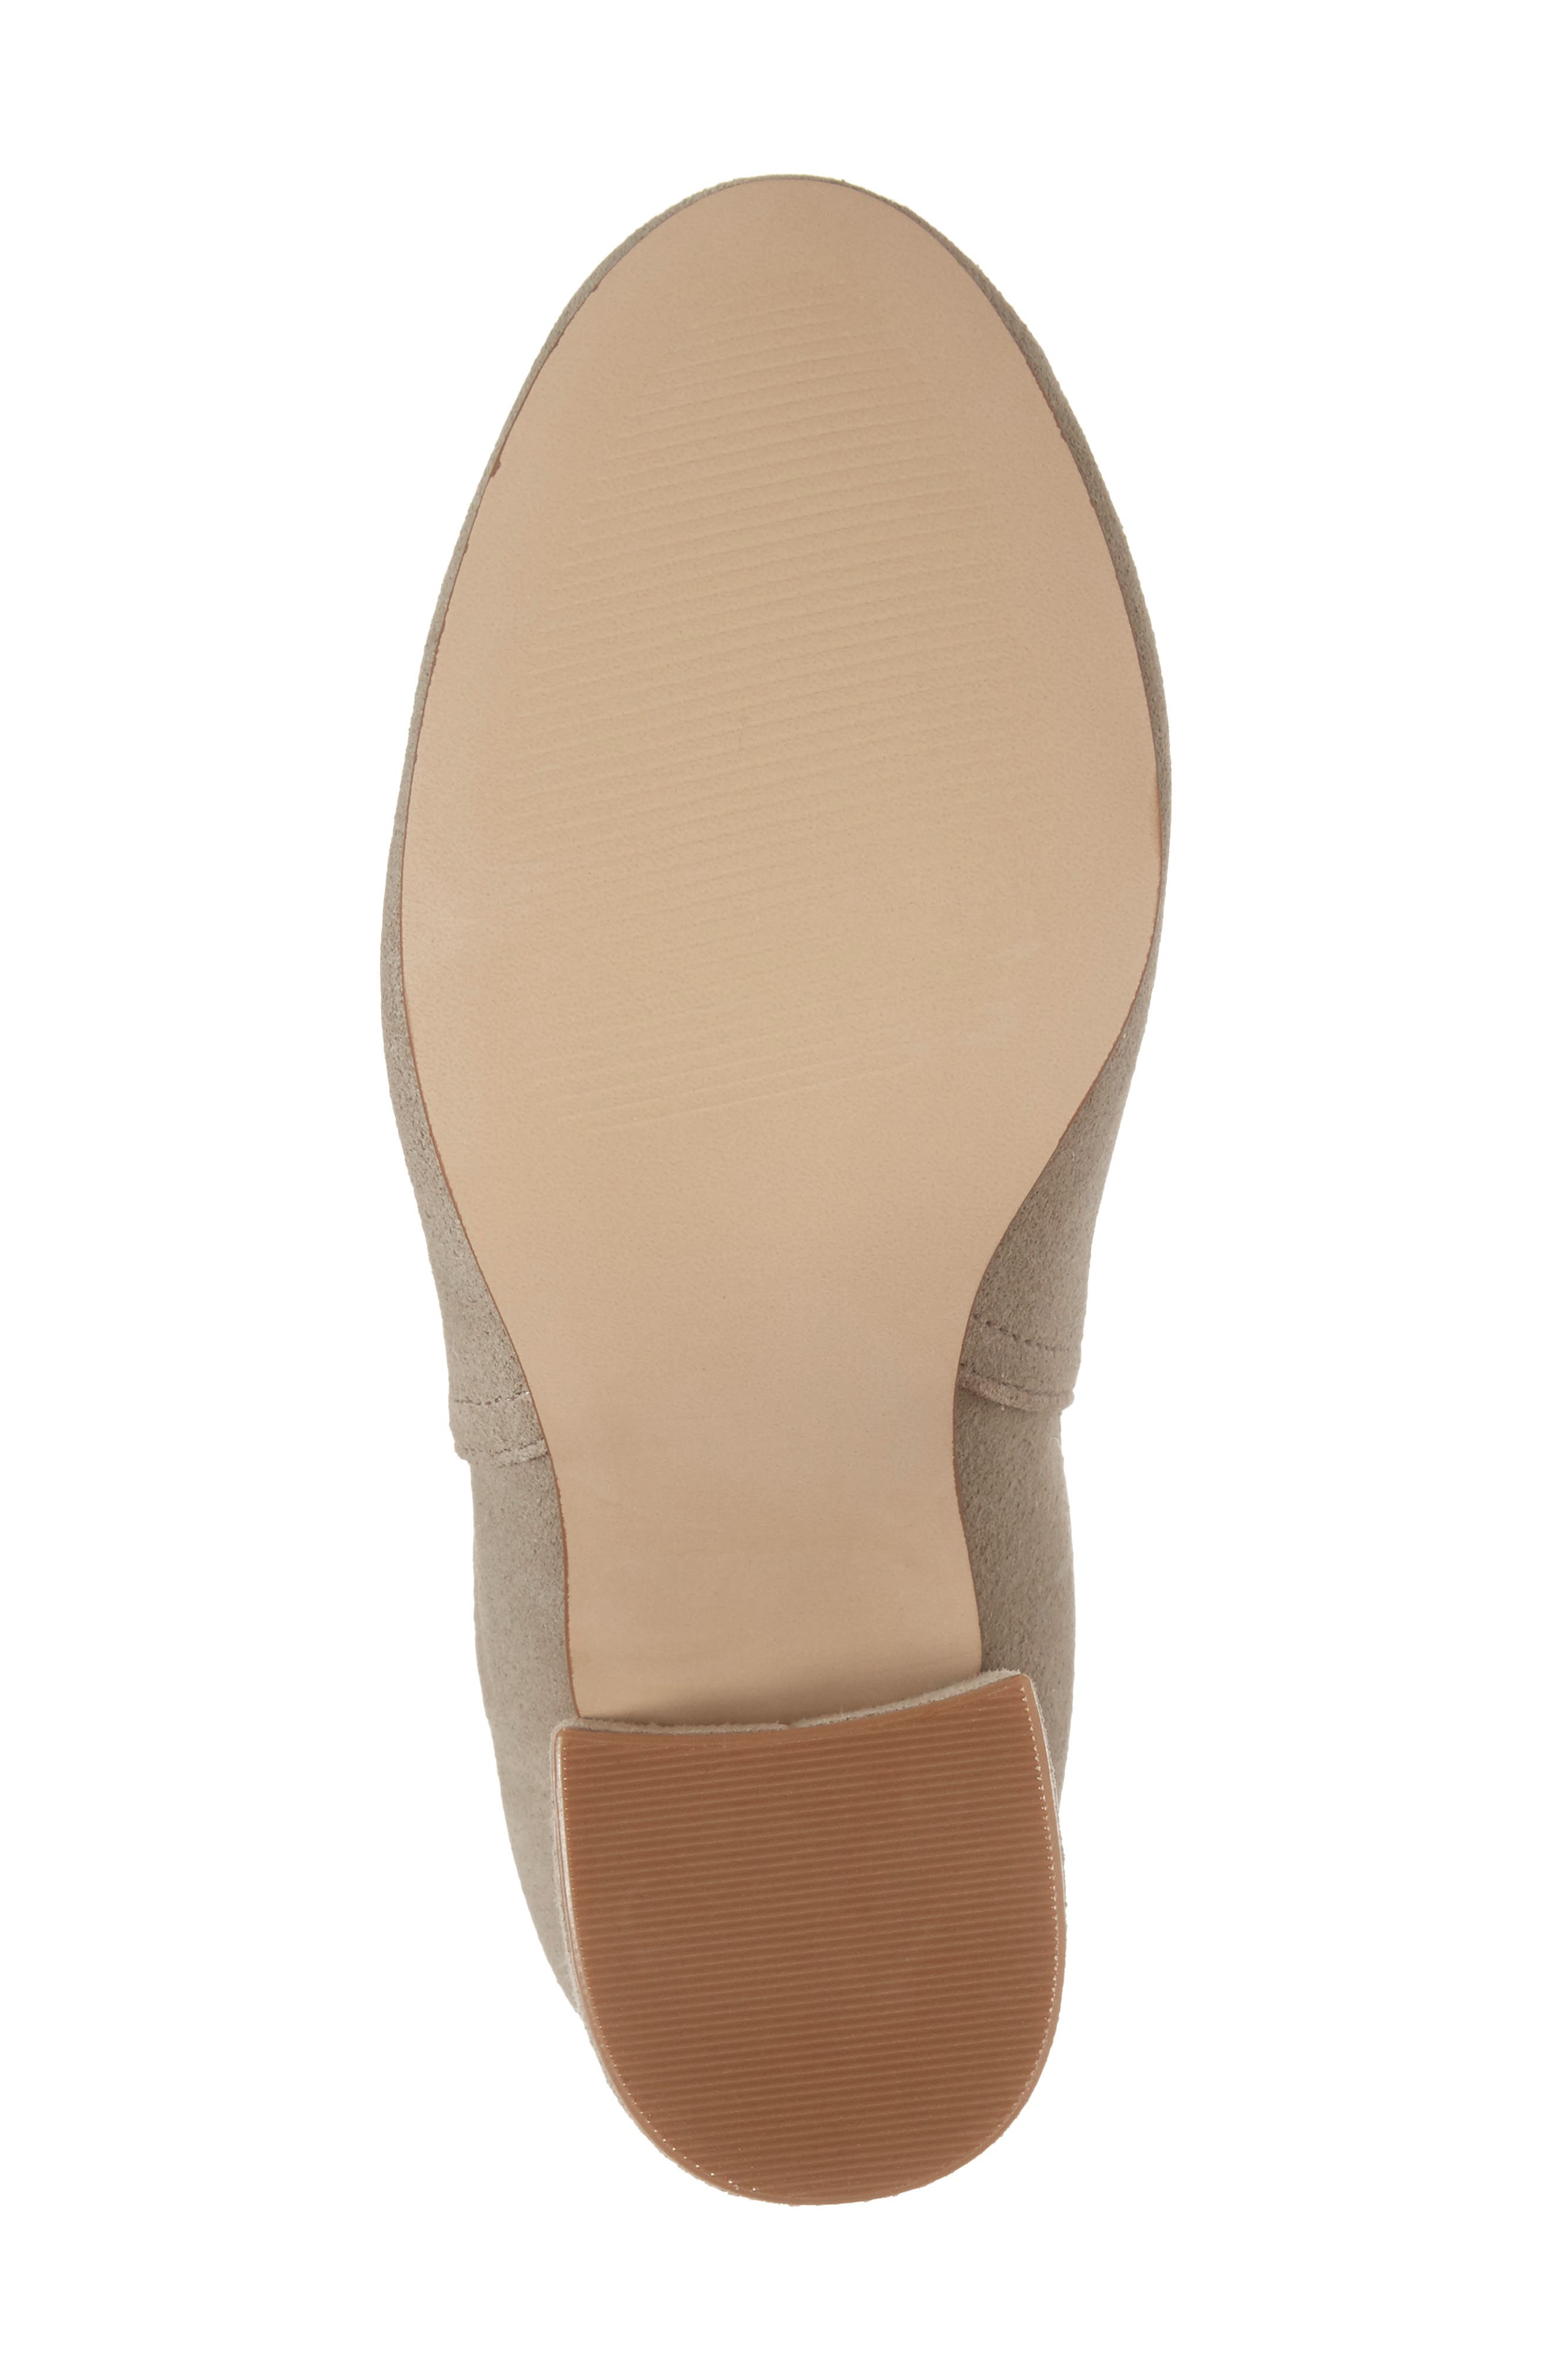 Naomi Cutout Bootie,                             Alternate thumbnail 6, color,                             Taupe Suede